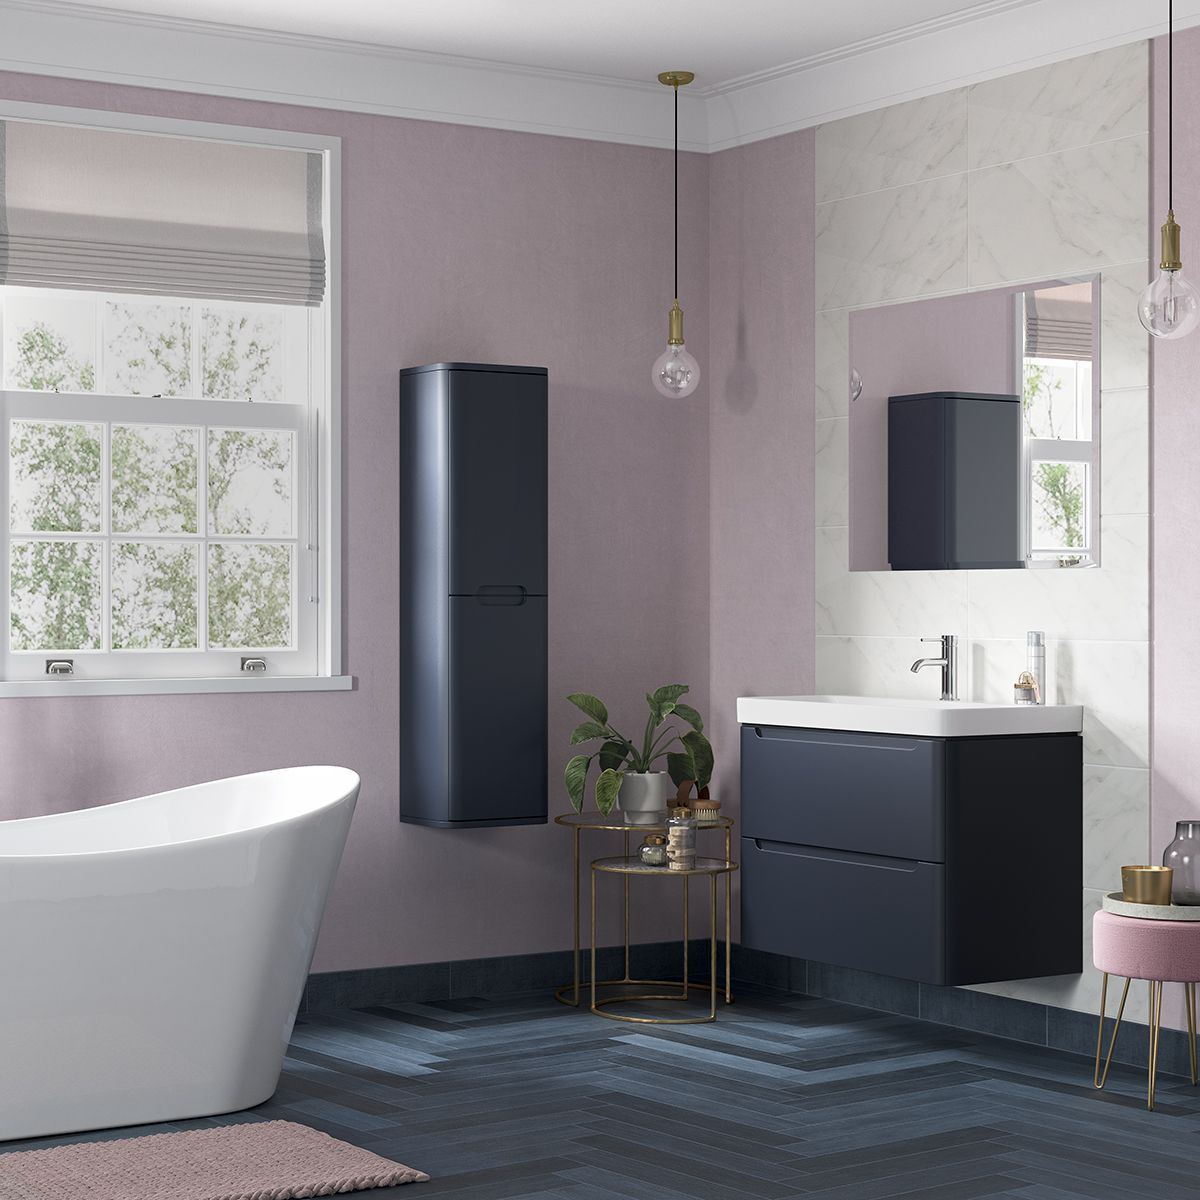 A Designer Look Doesn T Have To Cost You A Designer Price Tag Moods Lambra Range Available In Matt Indigo Ma Vanity Units Bathroom Furniture Indigo Walls